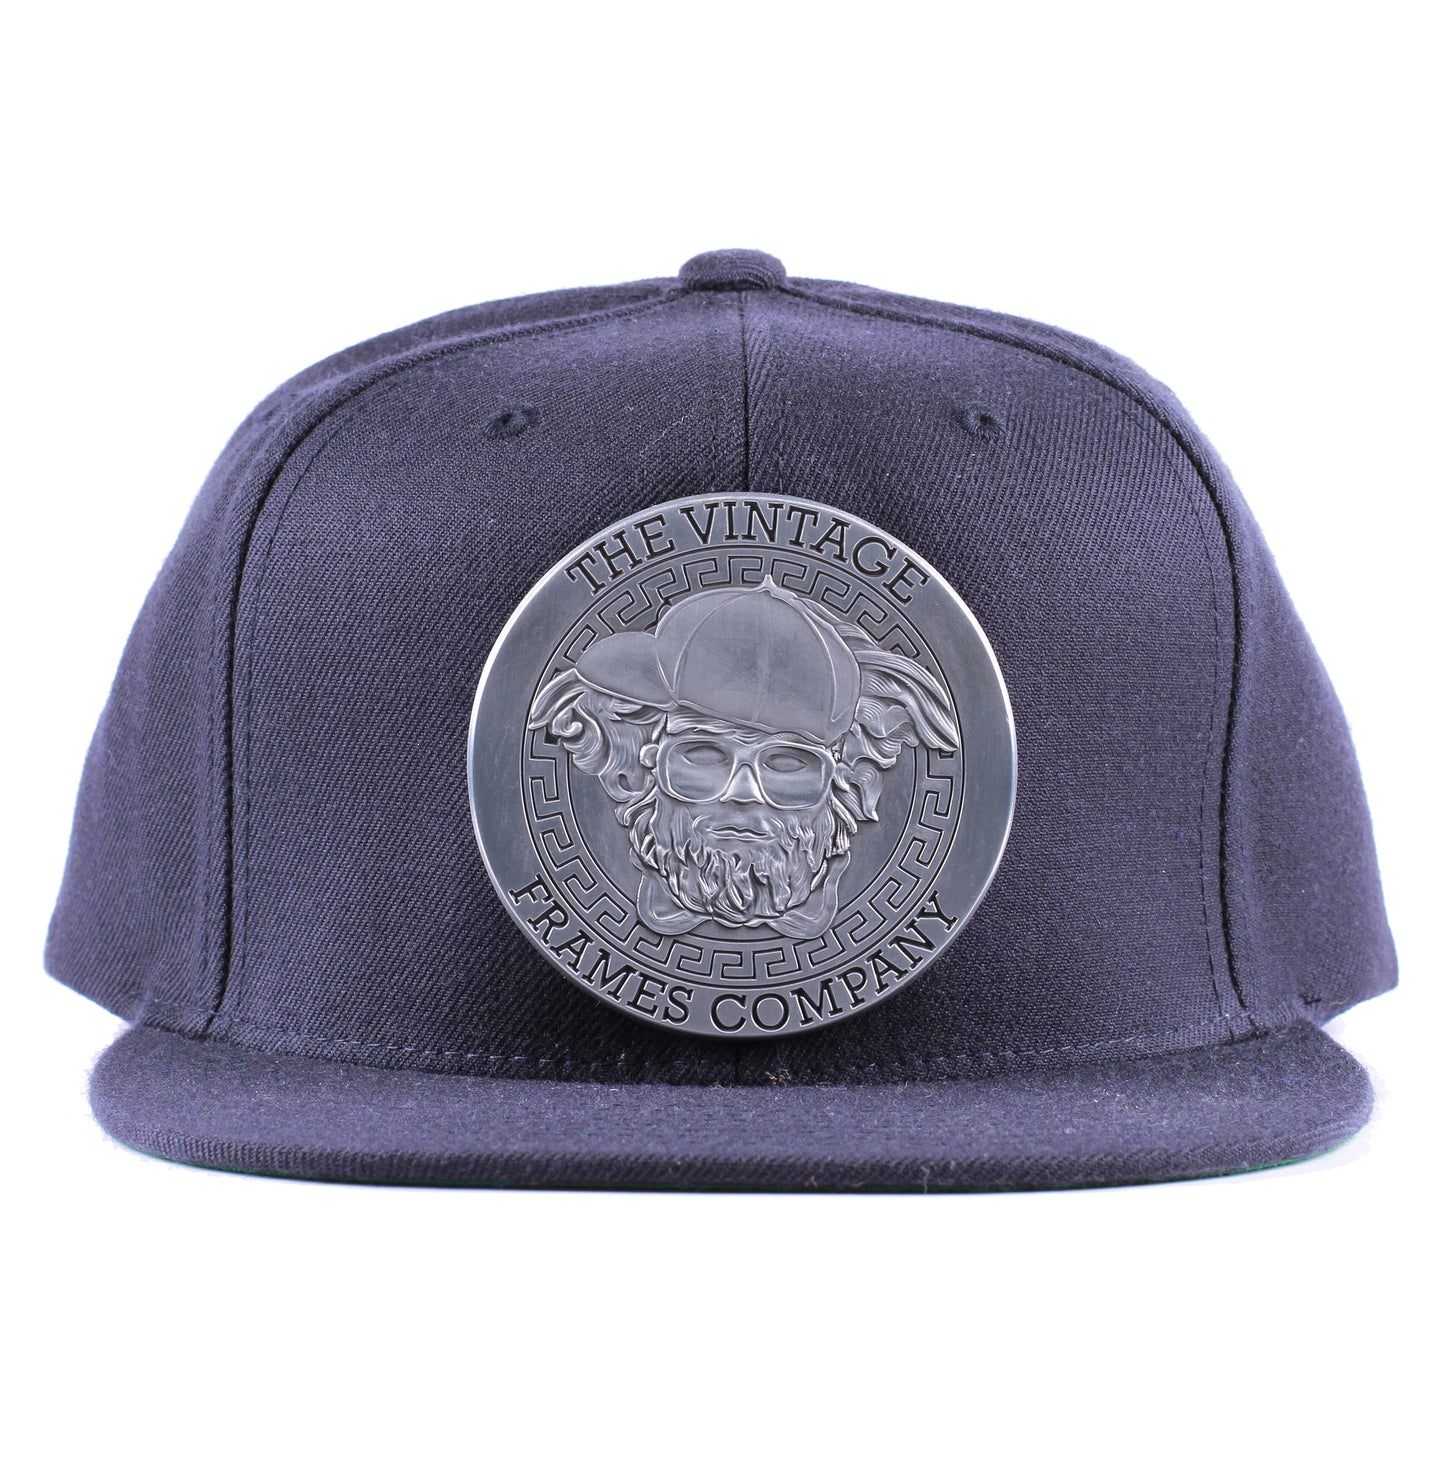 Vintage Frames Company Thinking Cap Blue/Matte Silver Snapback Front